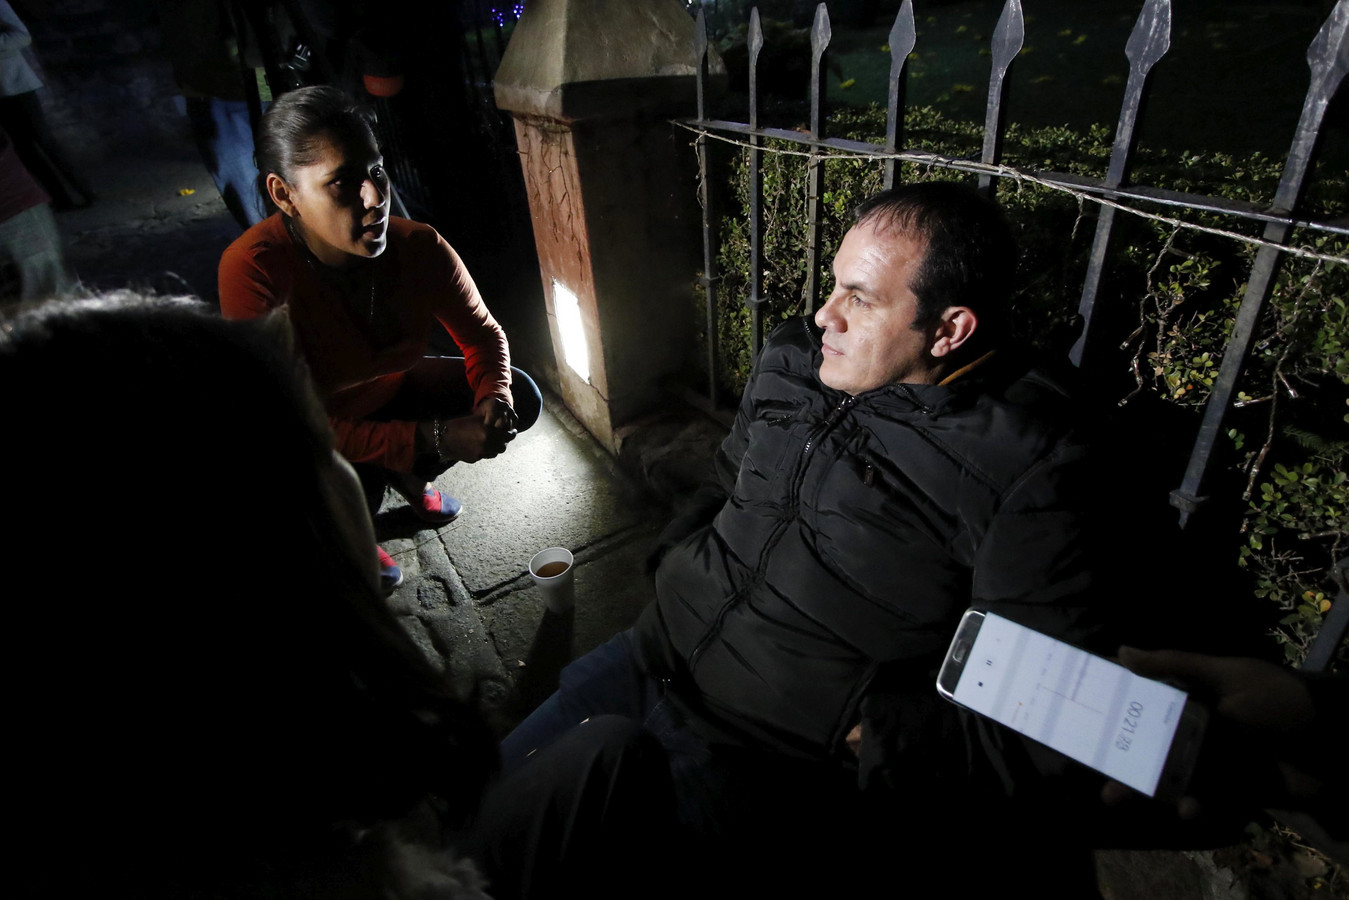 Controversial Soccer Star-Turned-Mayor Cuauhtémoc Blanco Stages Hunger Strike to Protest Impeachment